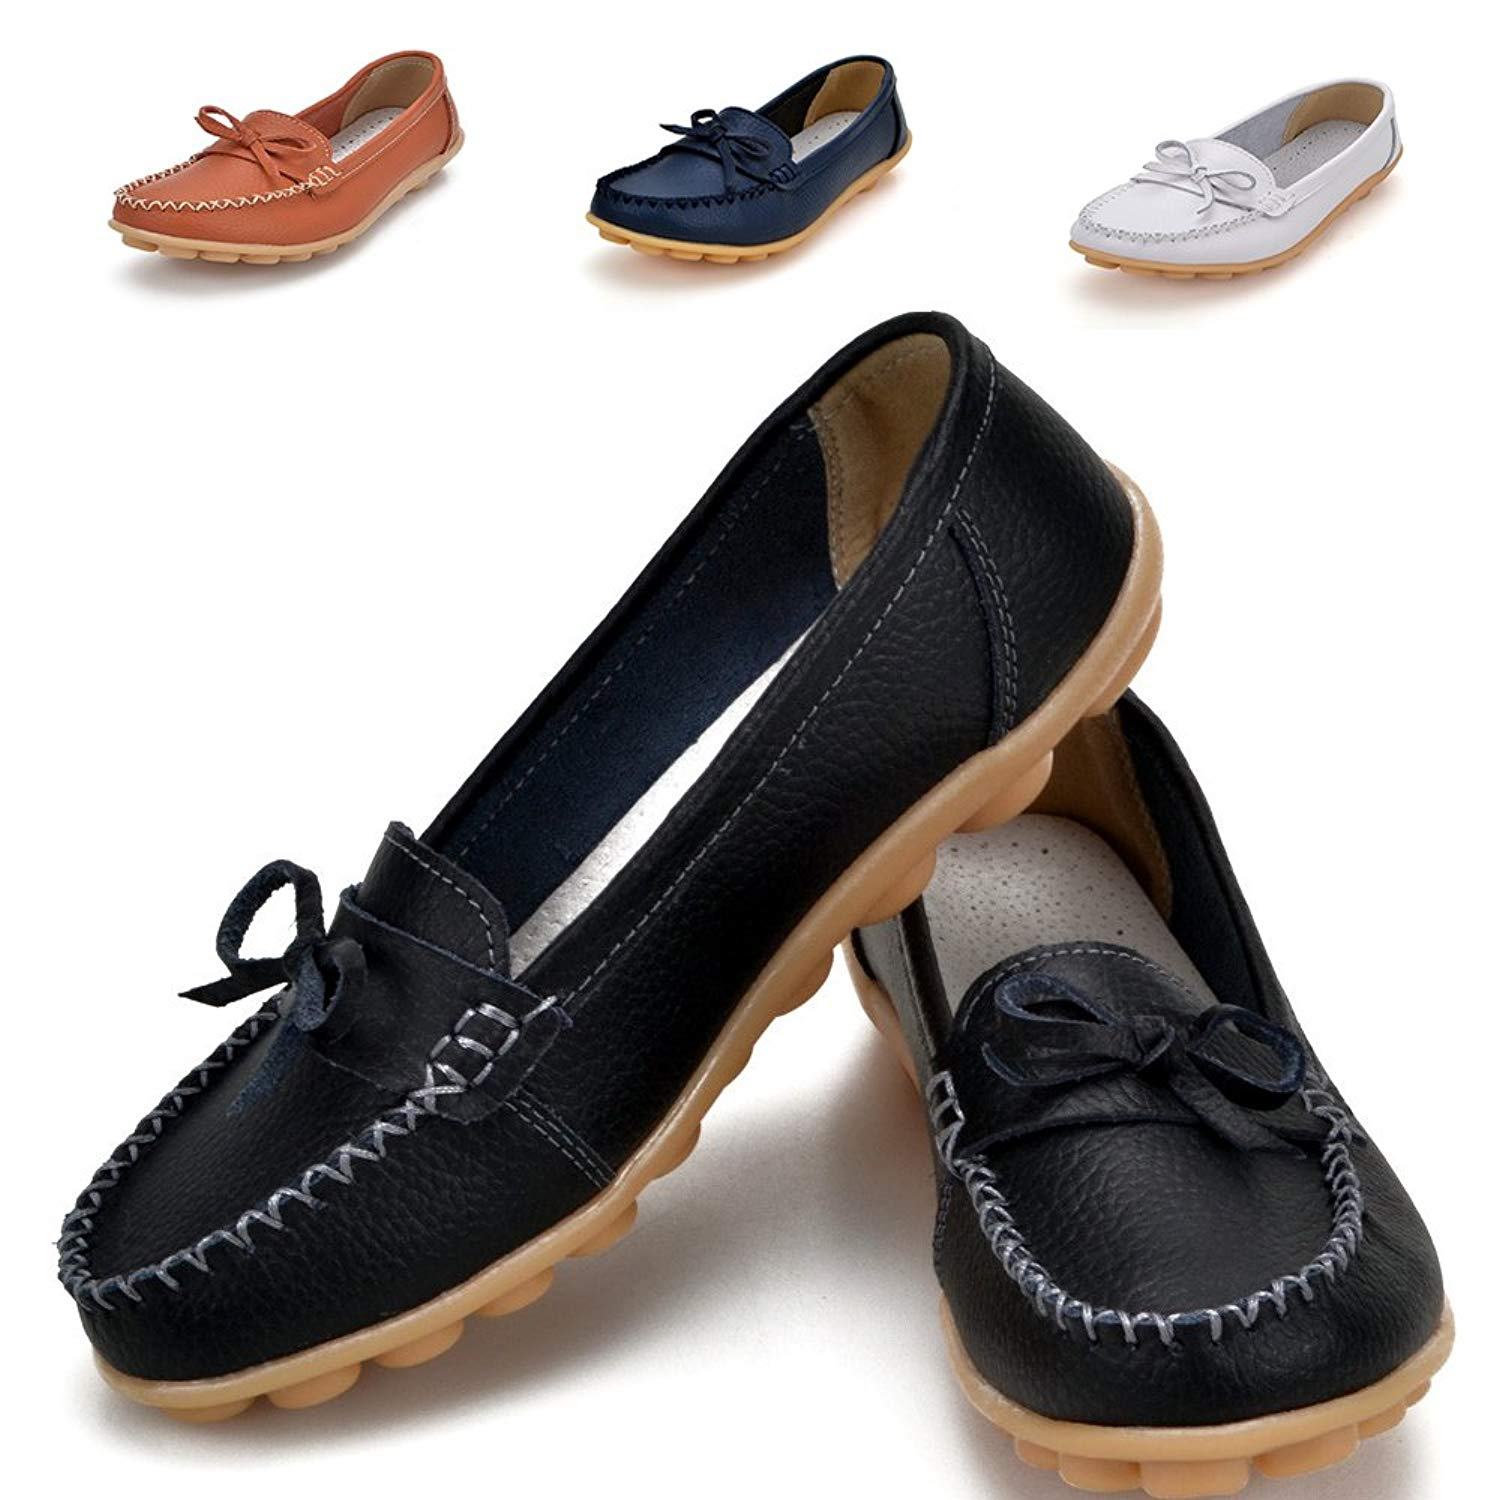 d76393e710a Earsoon Loafers for Women Shoes Leather - 2018 Summer Slip on Loafers  Ladies Comfy